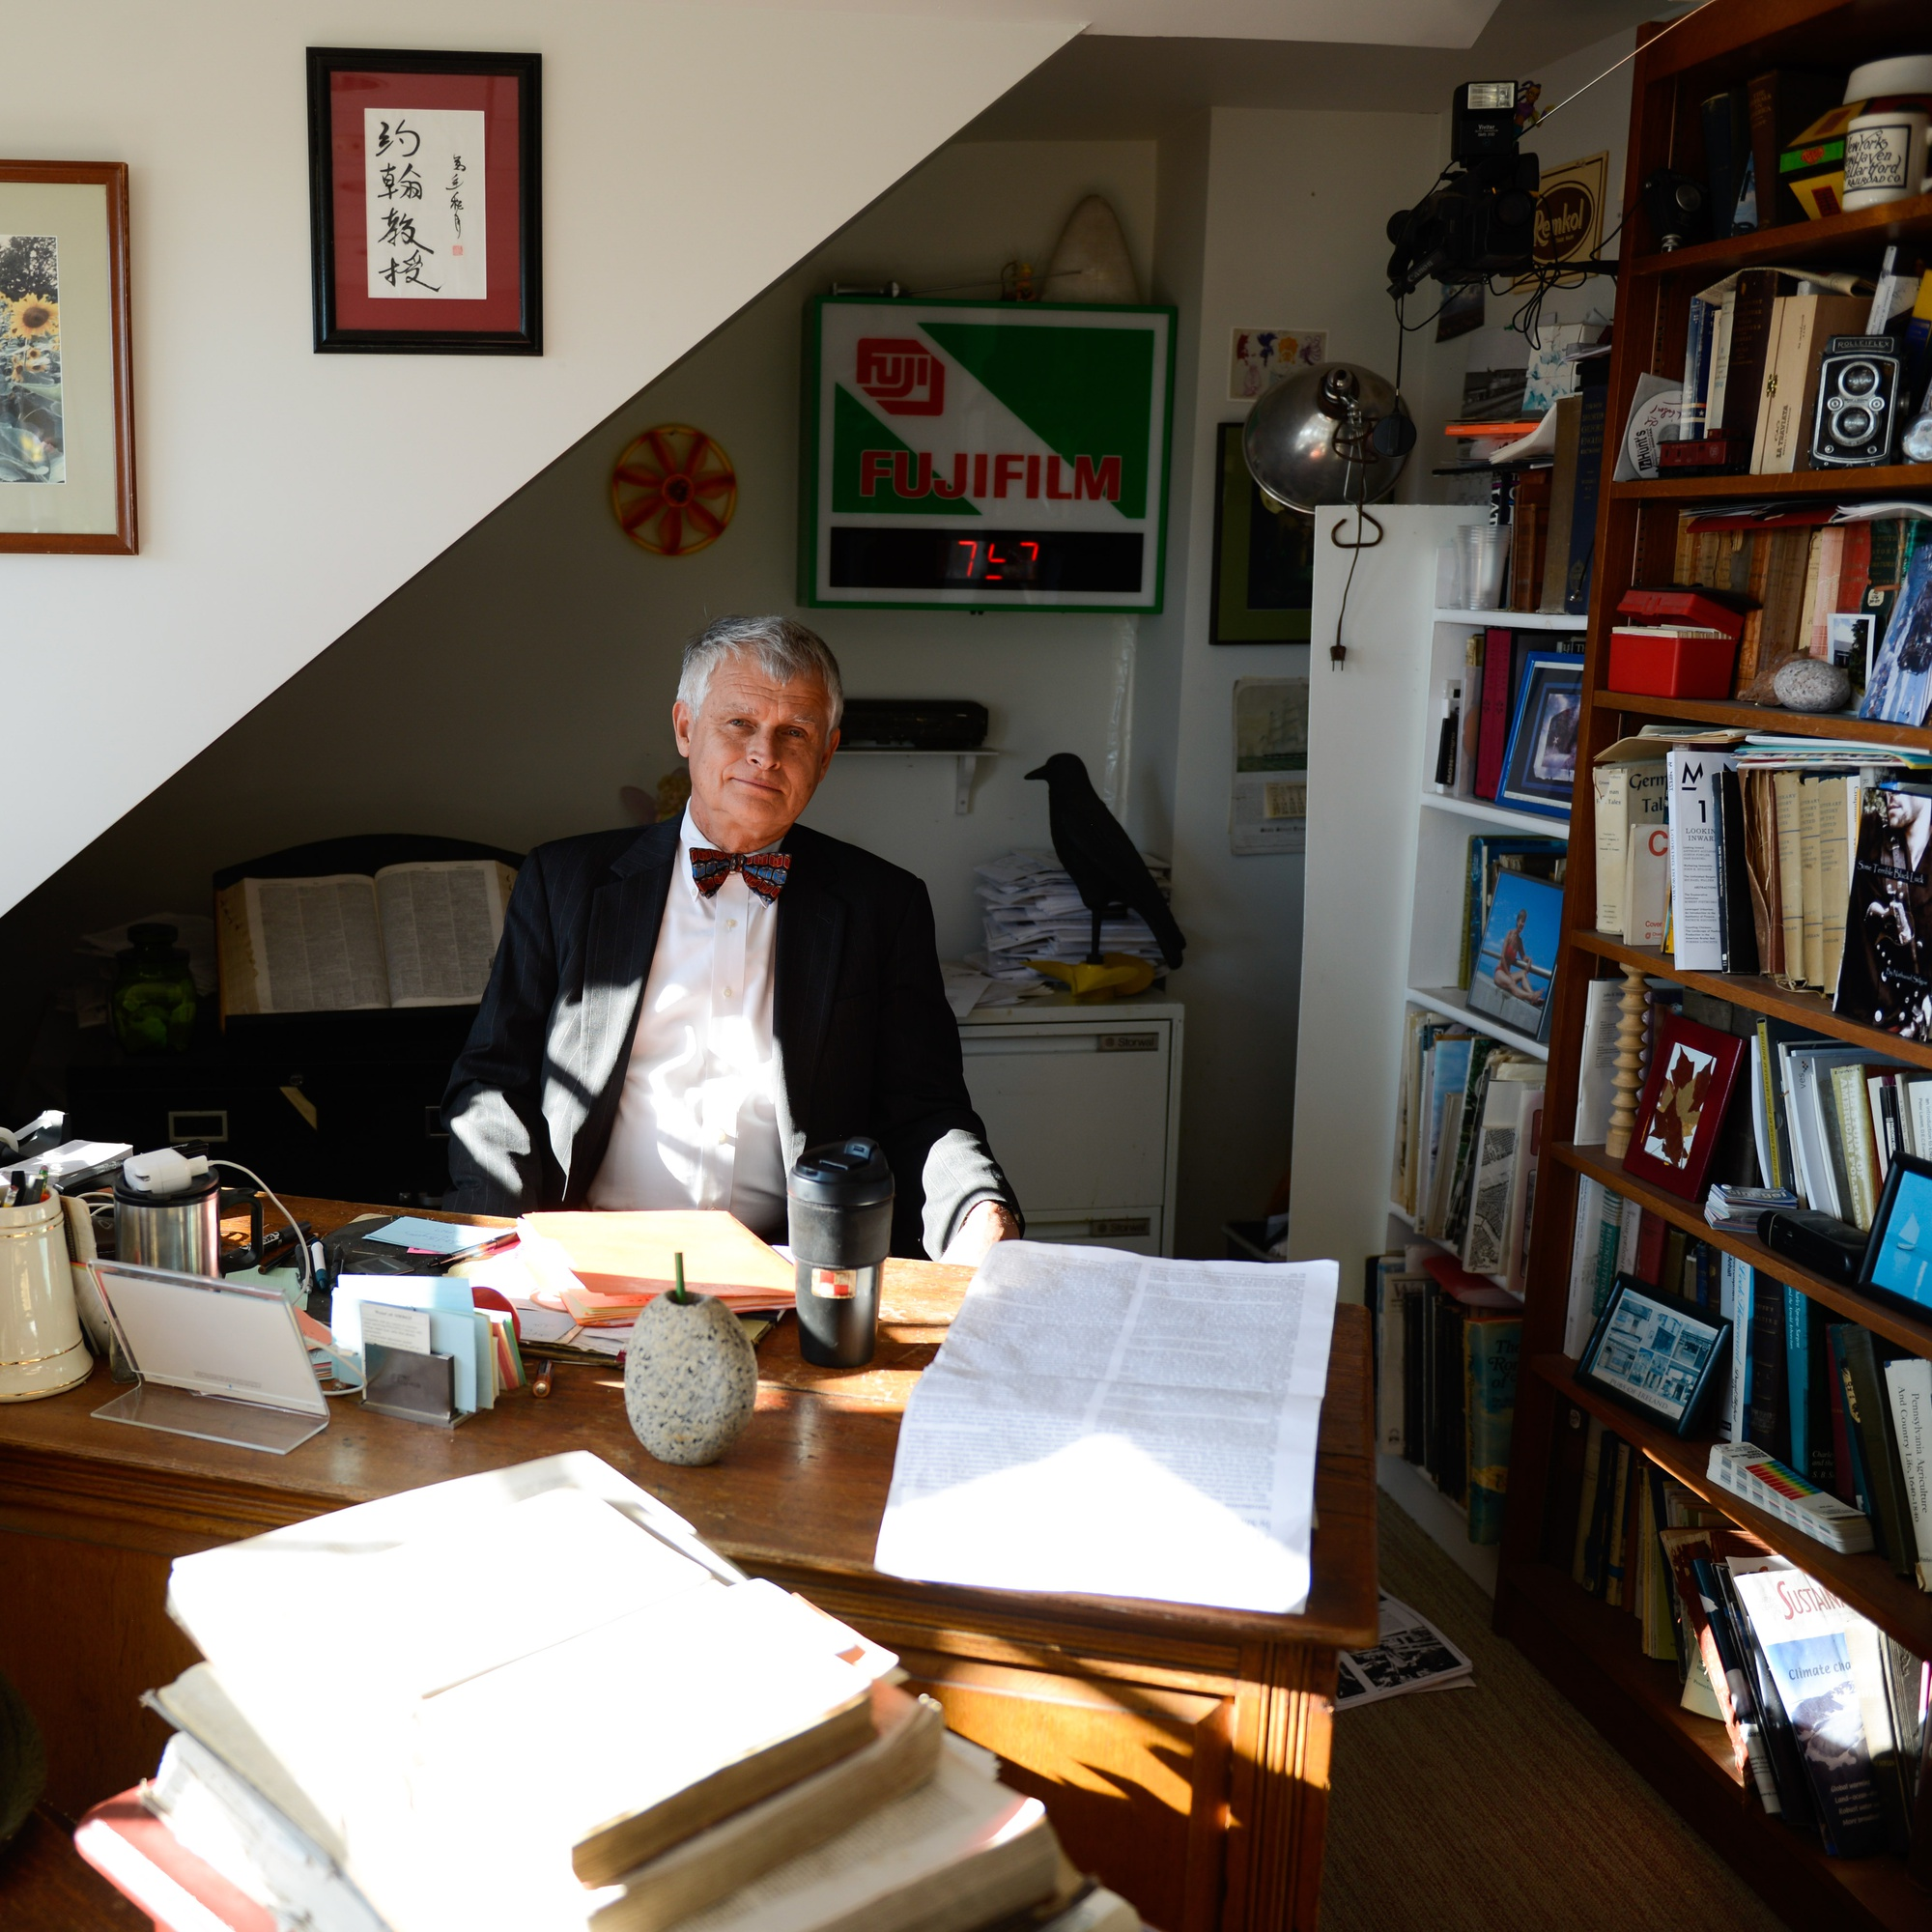 Stilgoe poses in his office on the top floor of Sever Hall. Students frequently drop by for office hours.